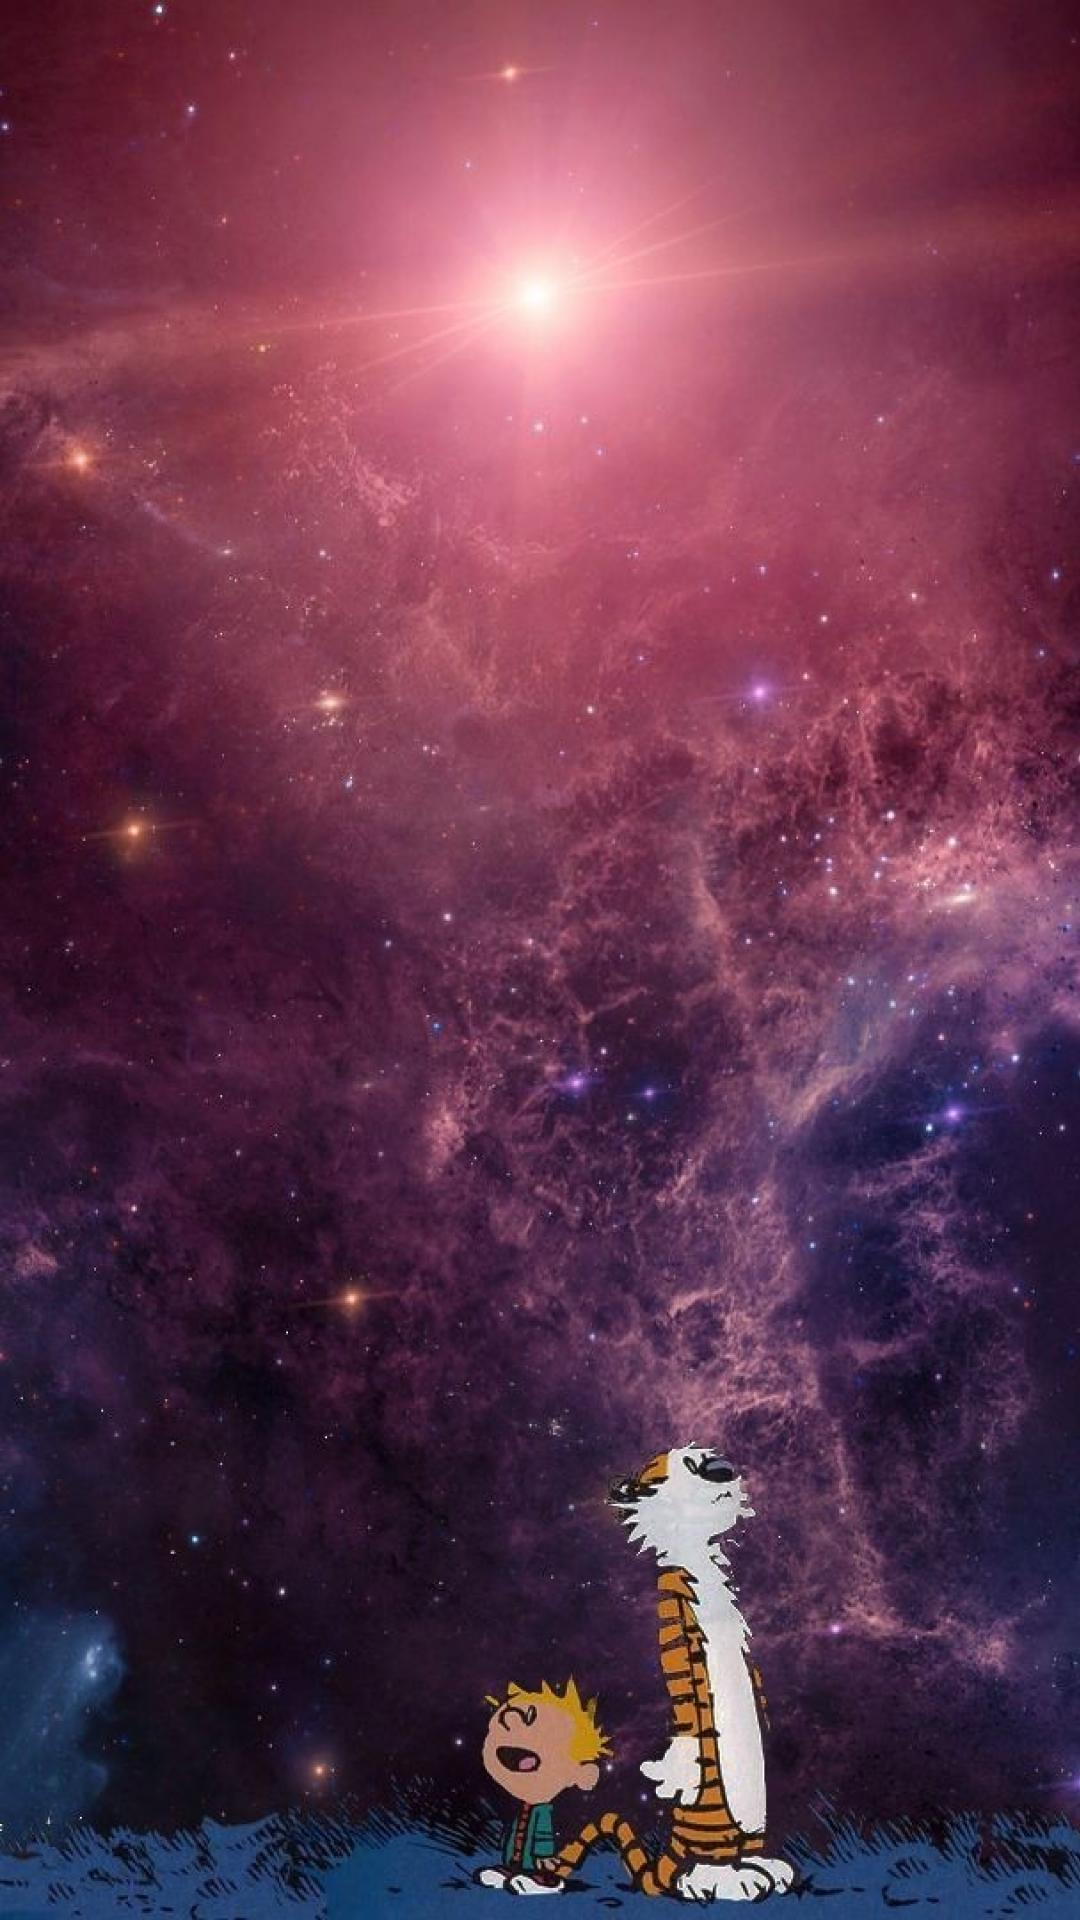 Magical Space Aesthetic Art Wallpapers - Wallpaper Cave